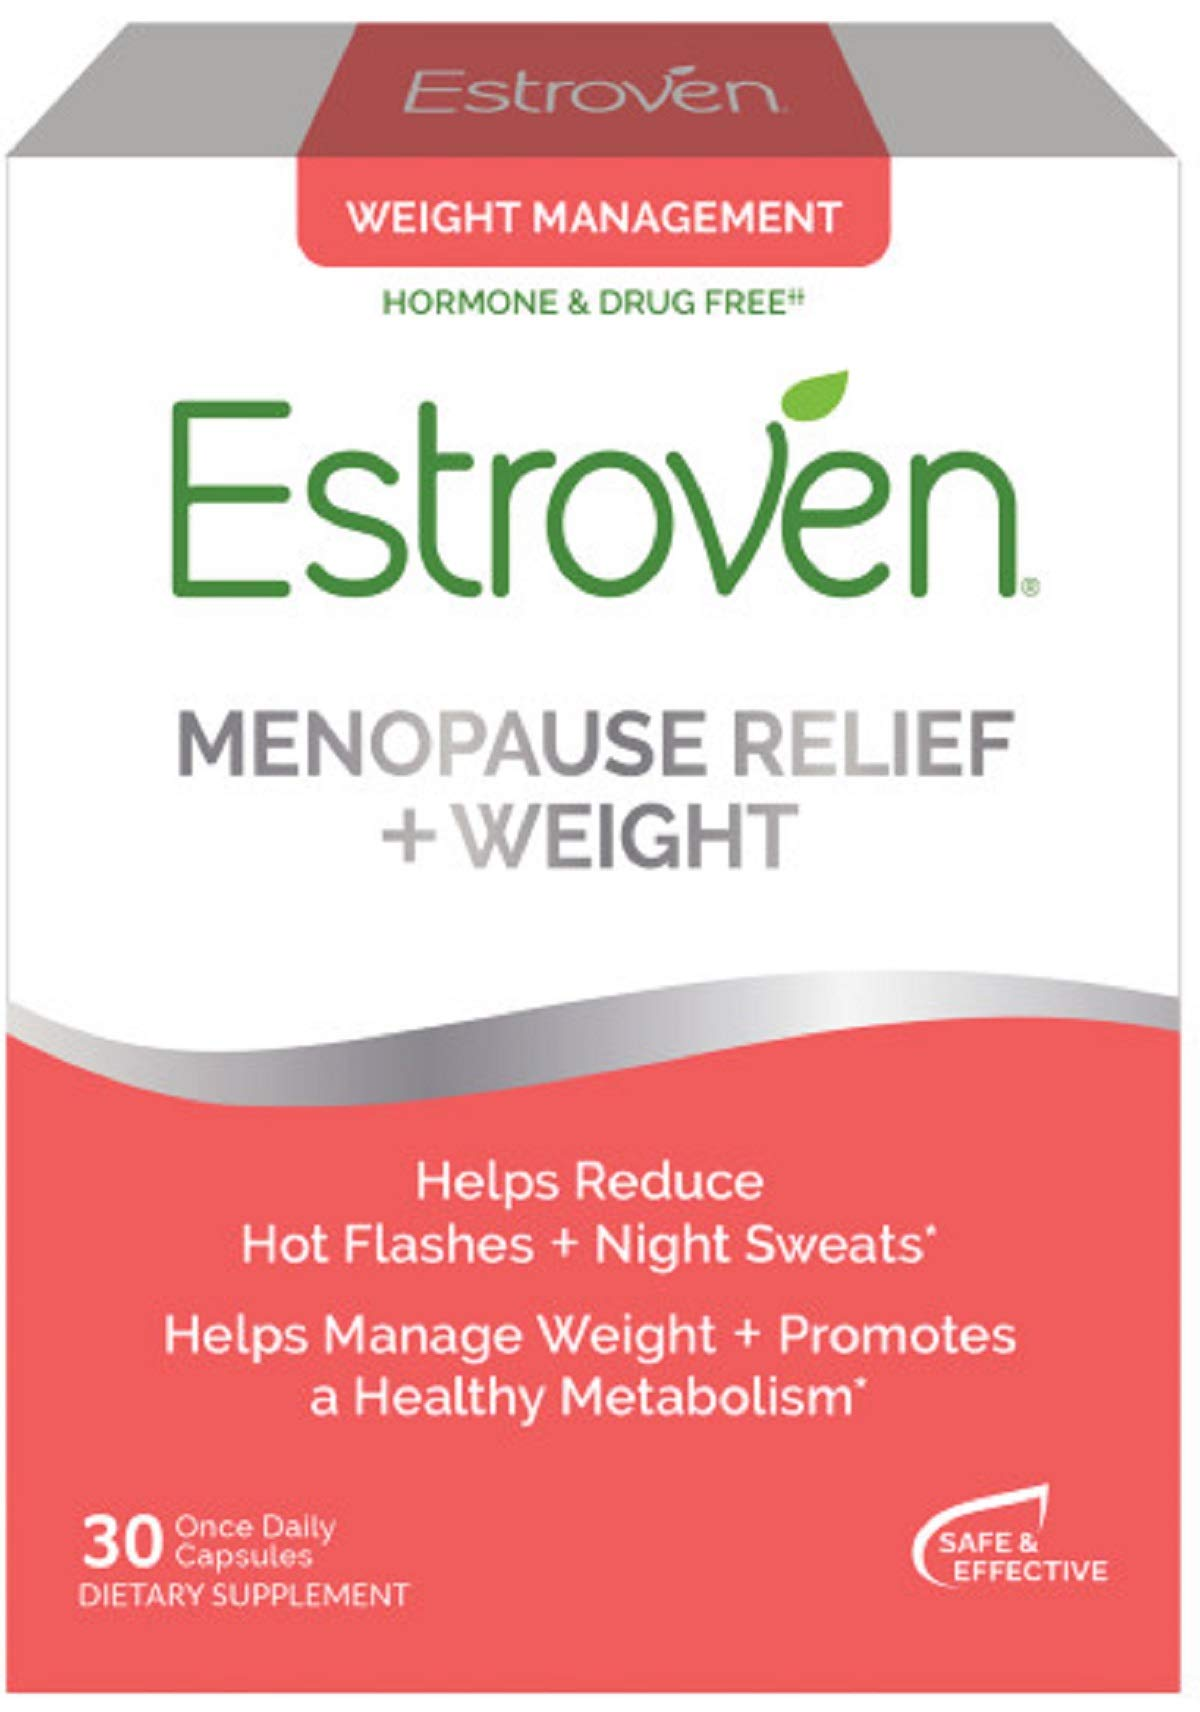 Estroven Weight Management | Menopause Relief Dietary Supplement | Safe Multi-Symptom Relief | Helps Reduce Hot Flashes & Night Sweats* | Helps Manage Weight* | Drug Free & Estrogen Free* | 30 Caplets by Estroven